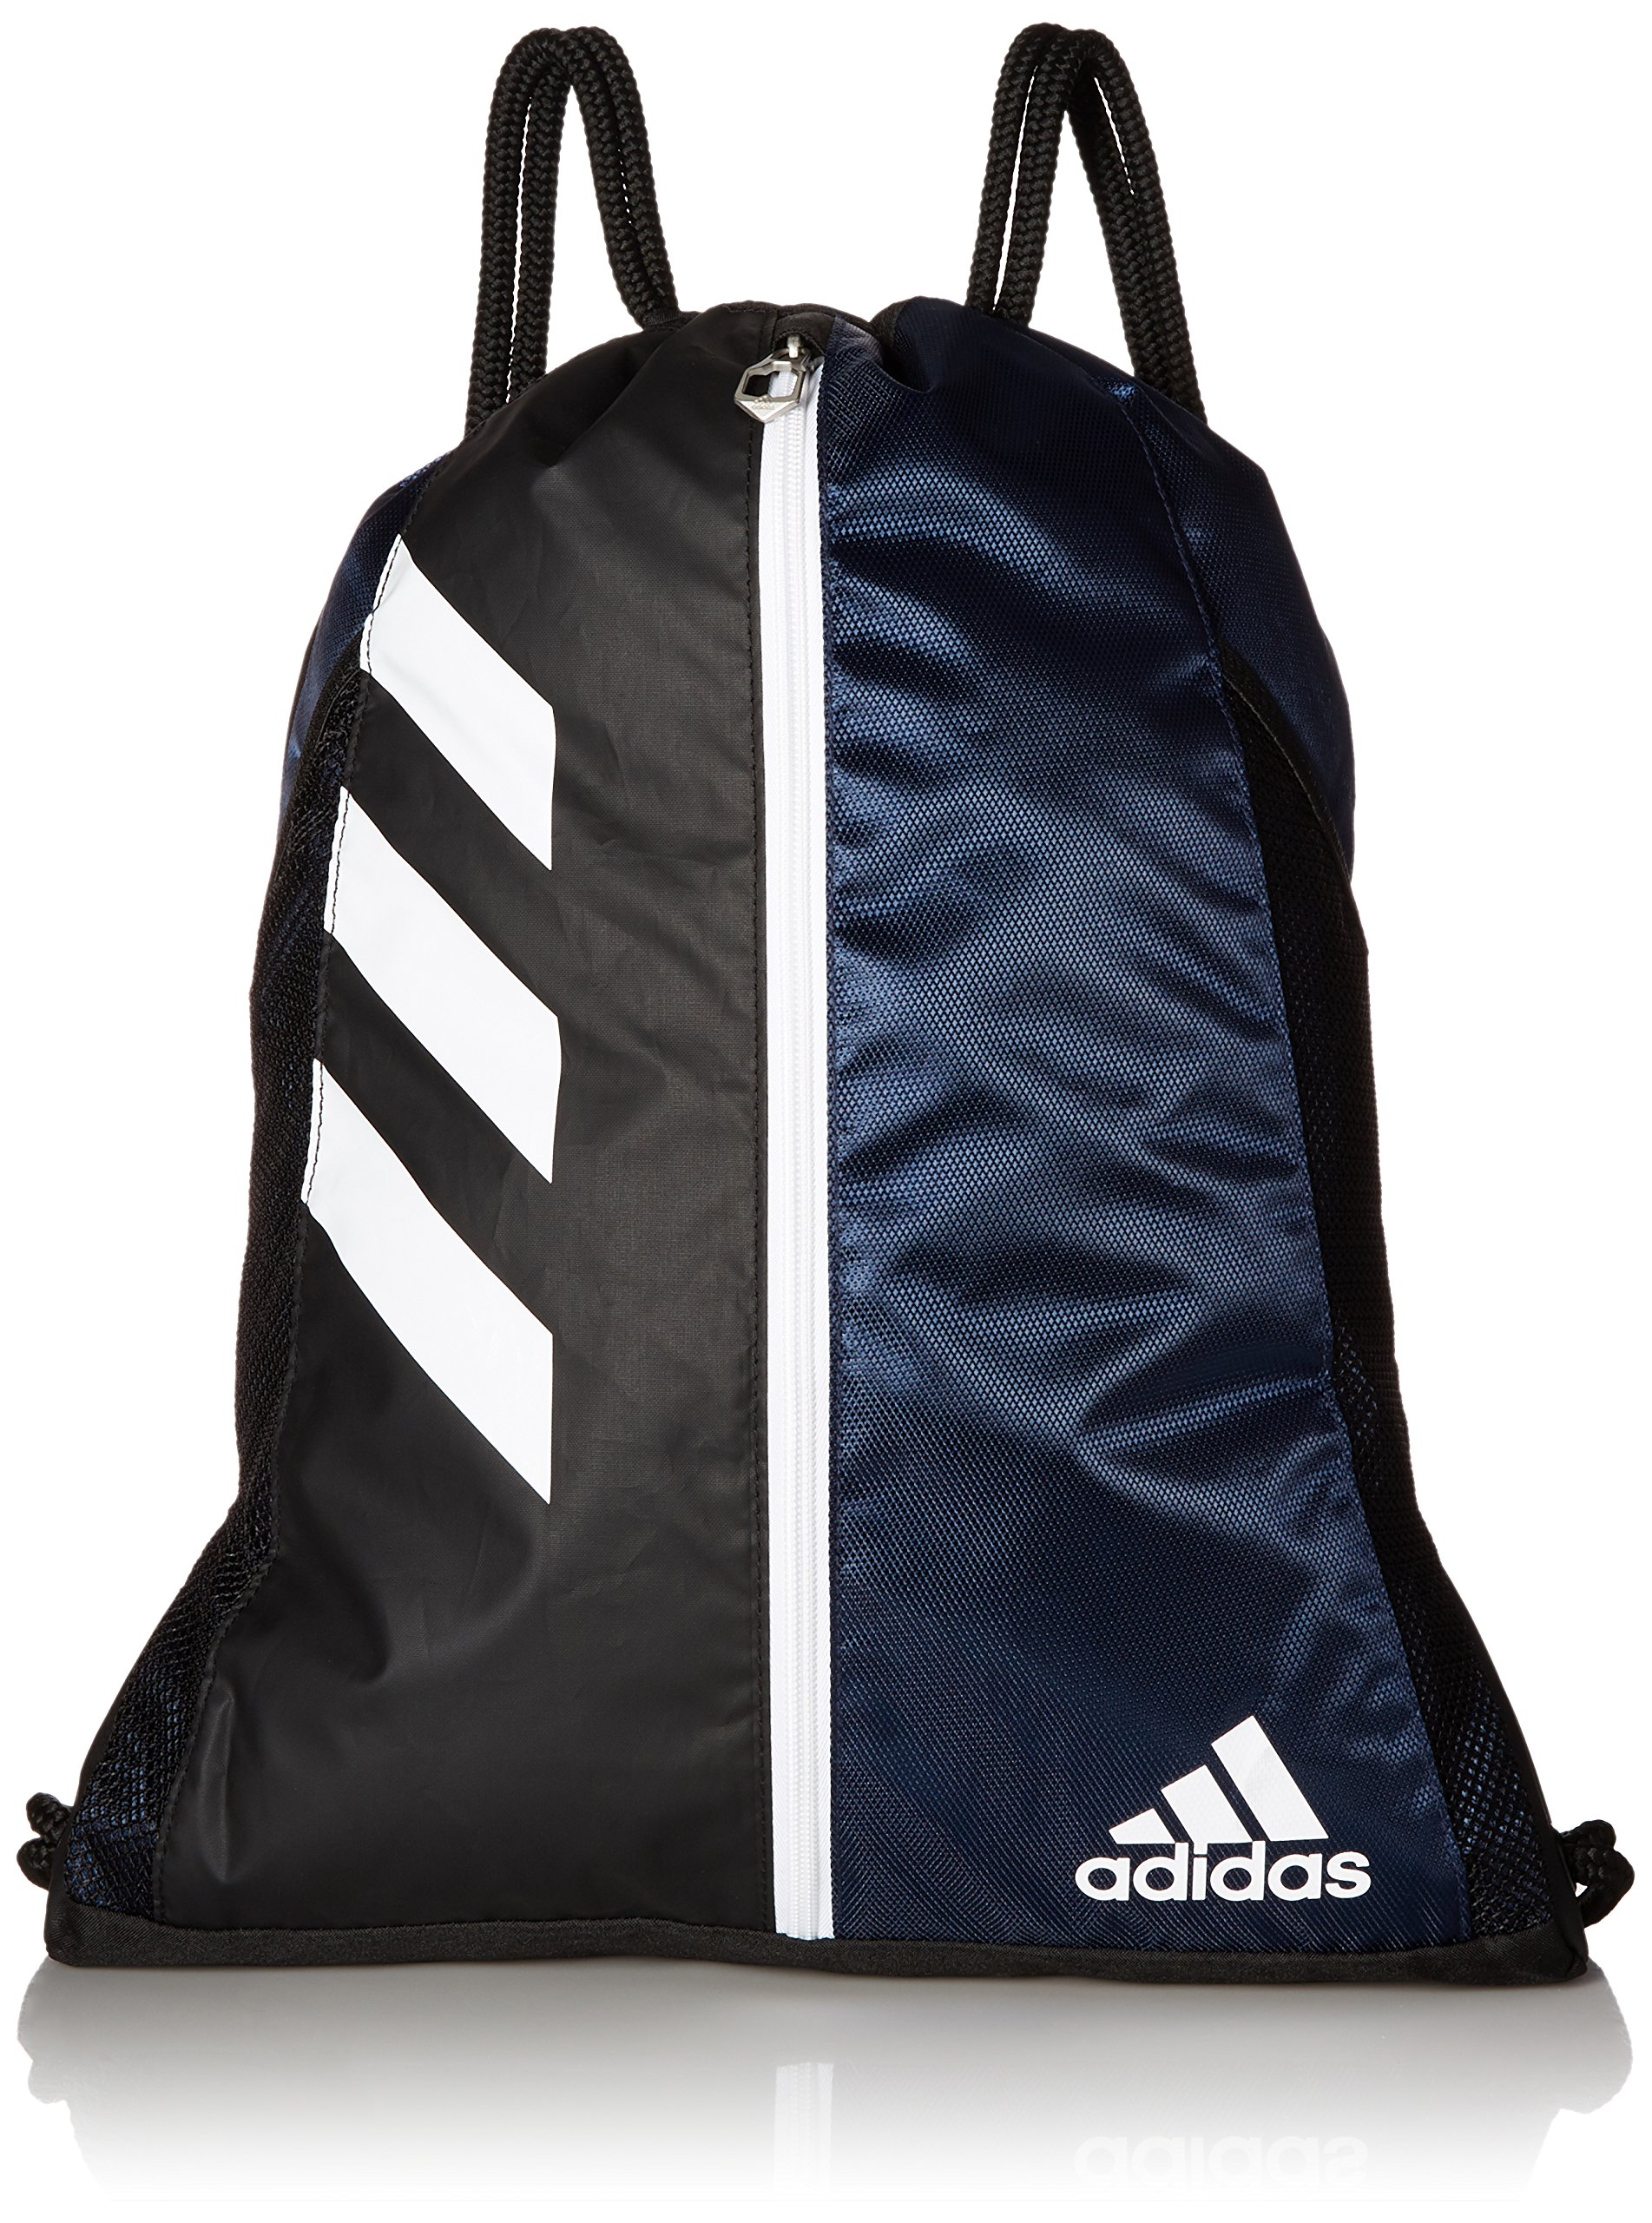 adidas Team Issue Sackpack, Collegiate Navy/Black/White, One Size